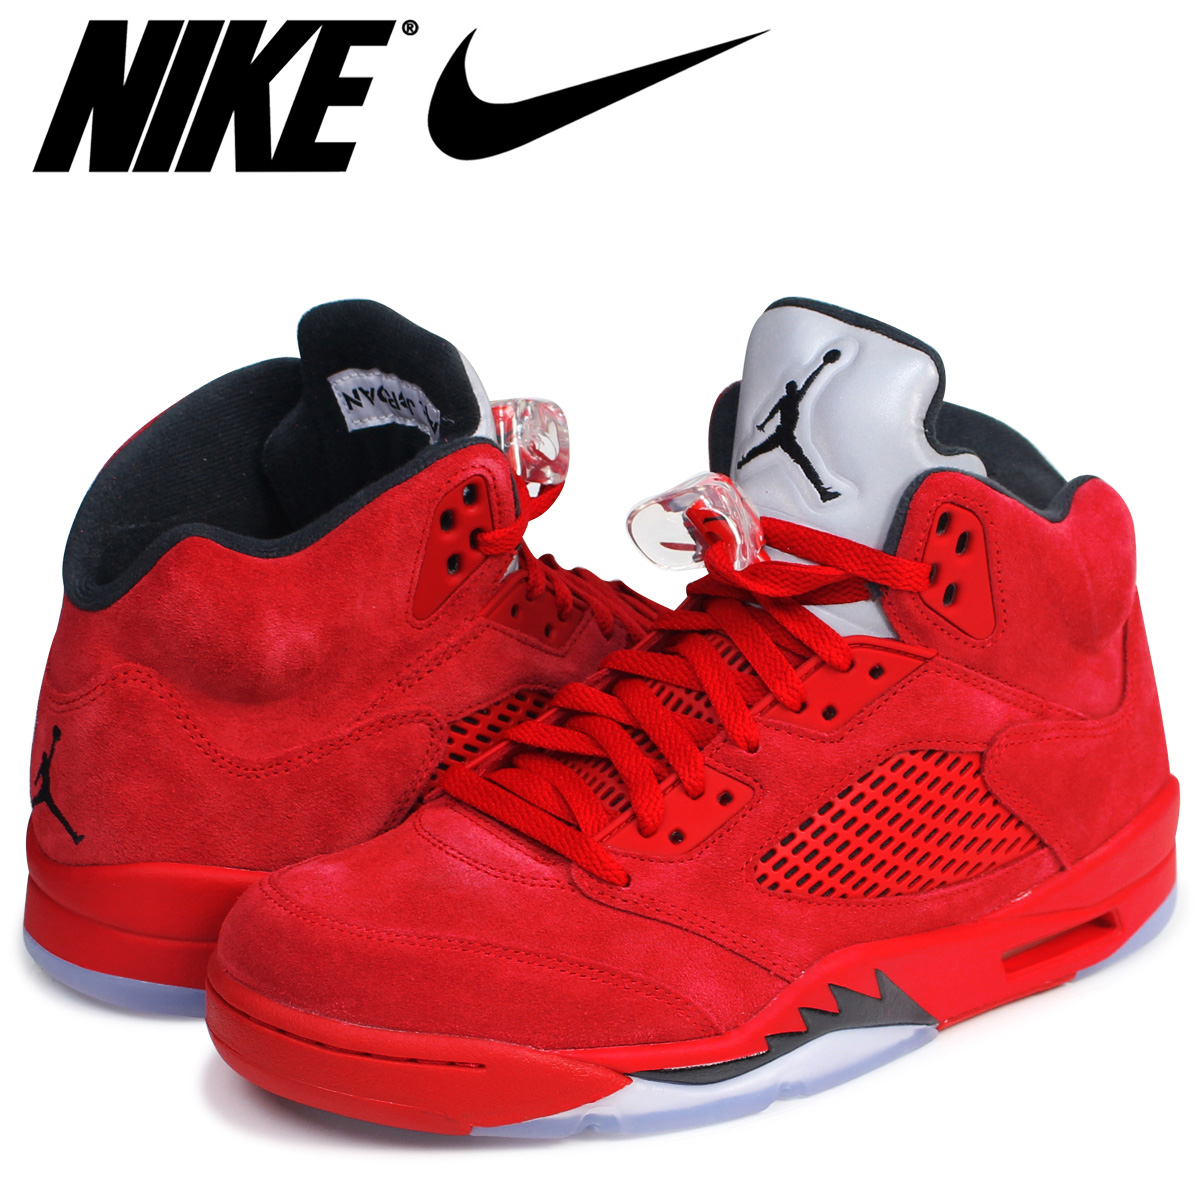 new arrival 7ba98 ad1a8 NIKE Nike Air Jordan sneakers AIR JORDAN 5 RETRO Air Jordan 5 nostalgic  136,027-602 men's shoes red red